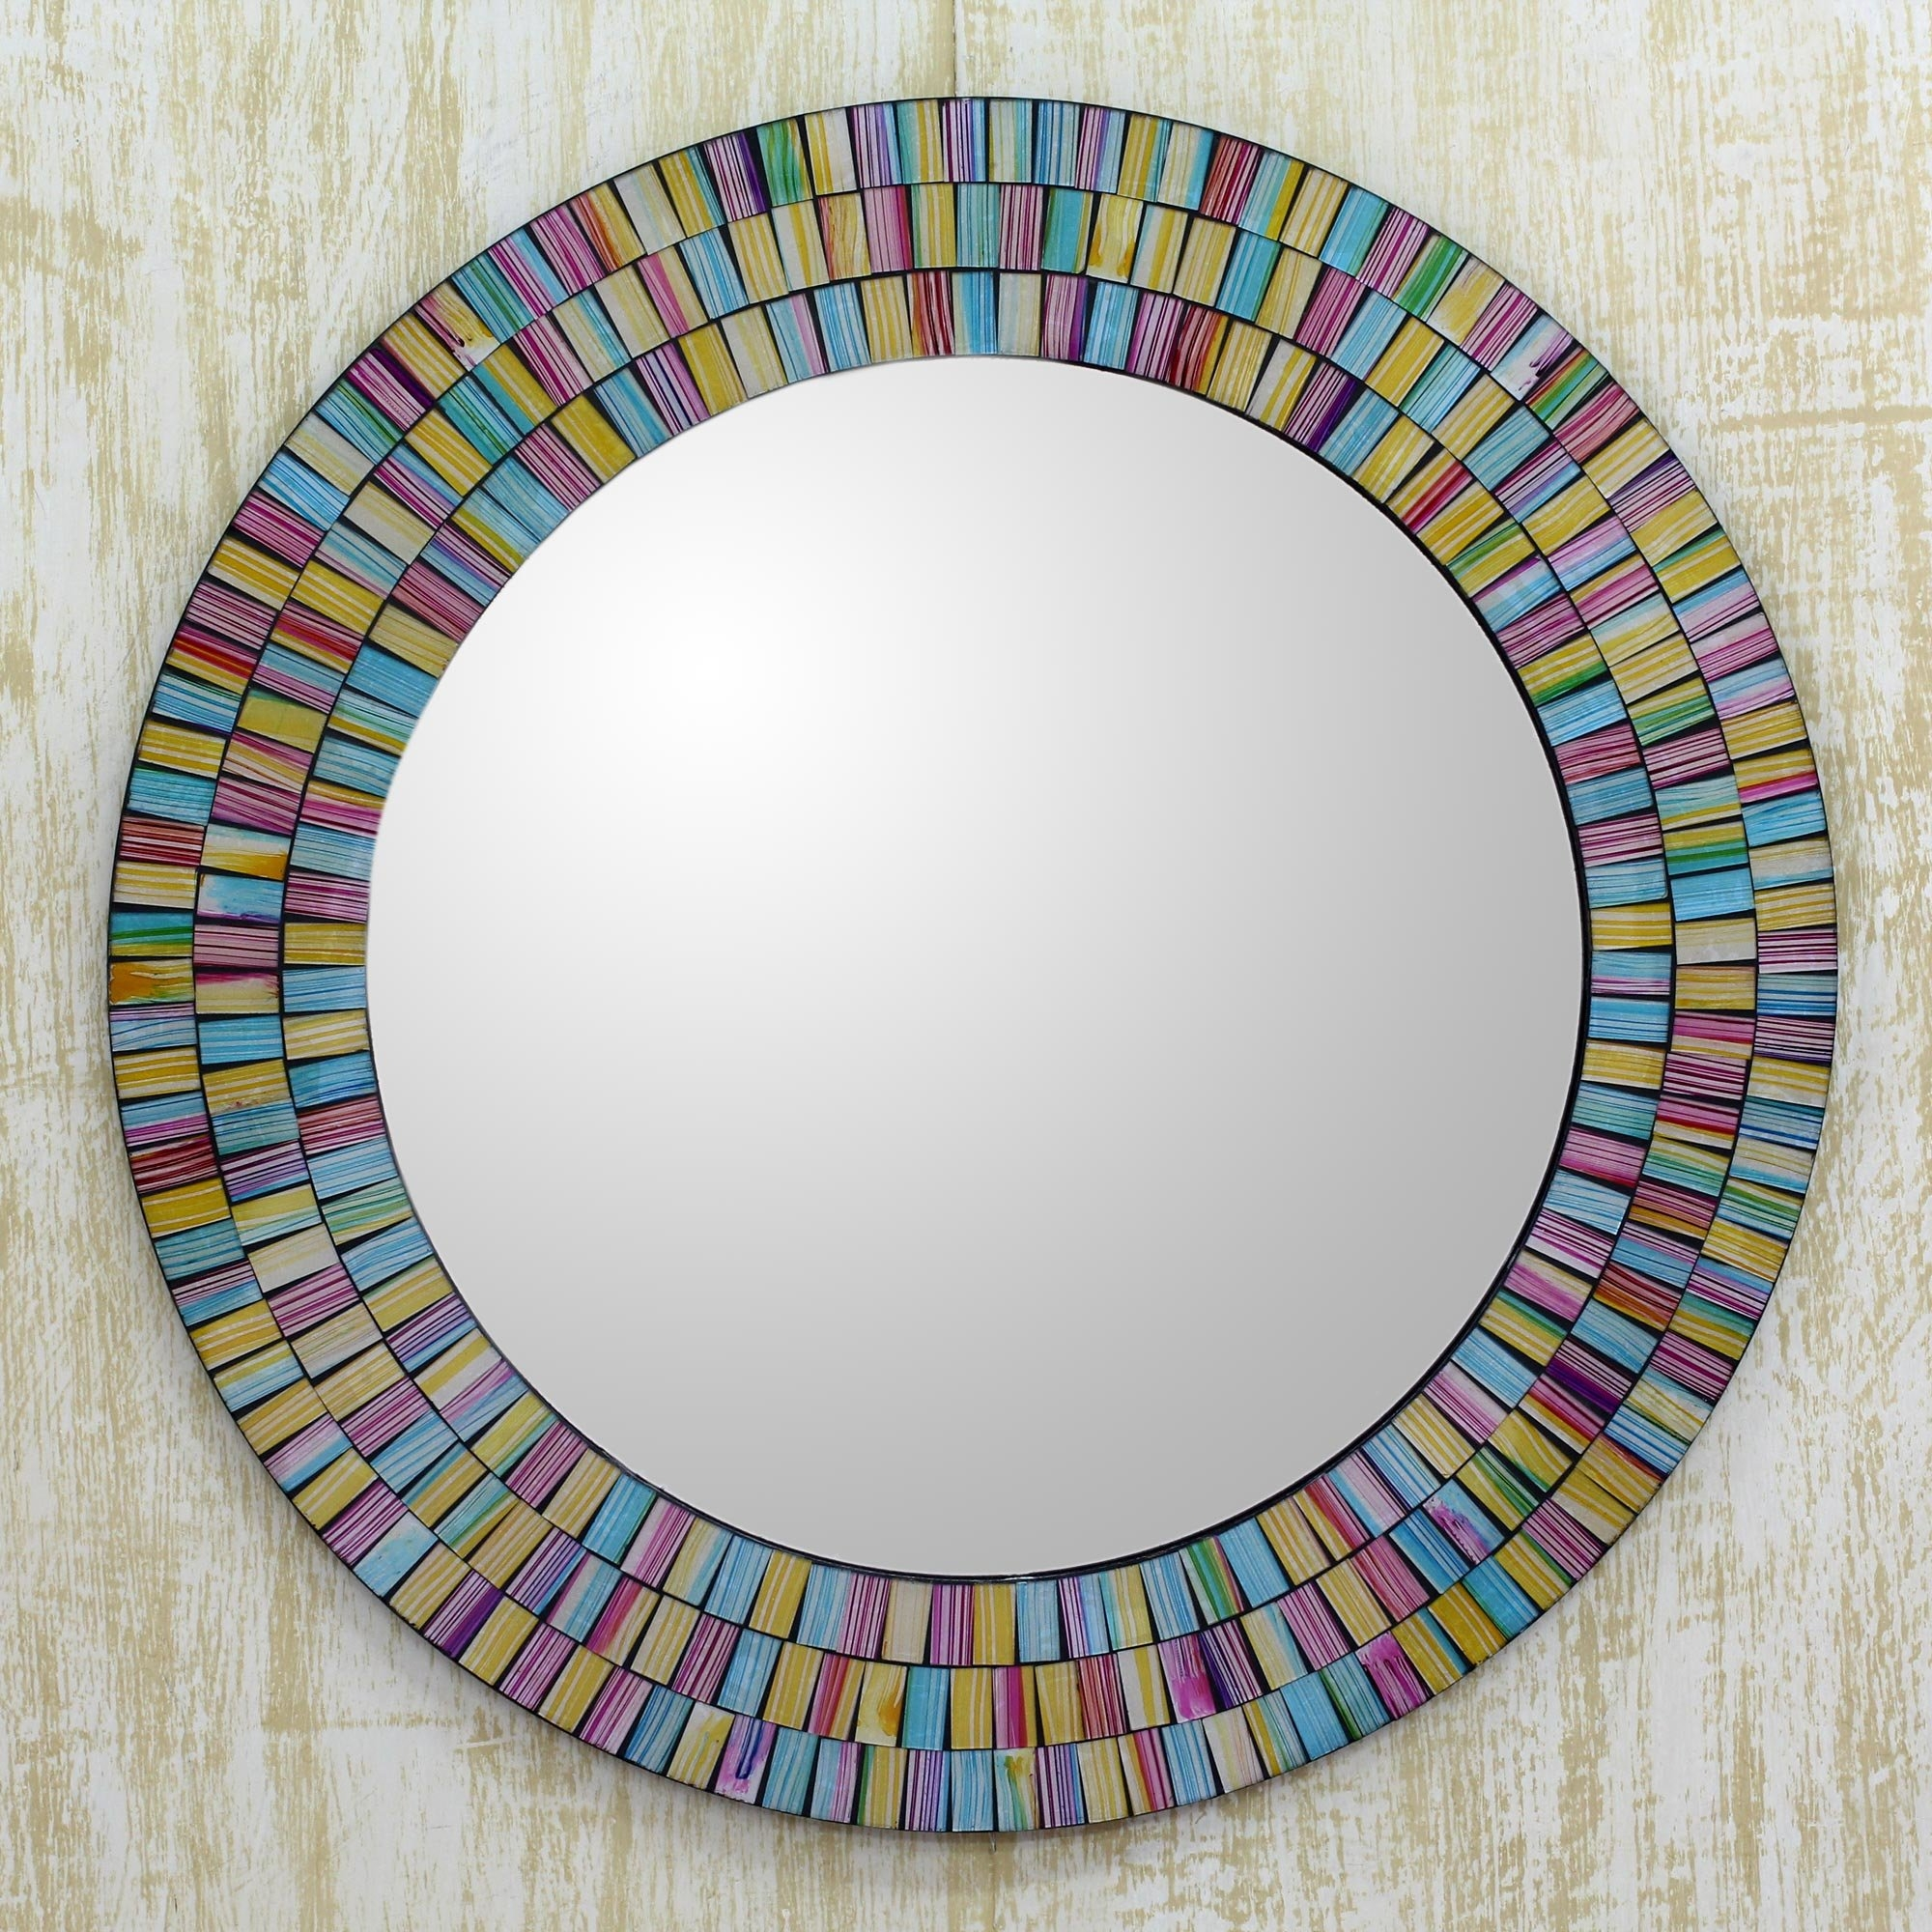 Novica Rainbow Halo Artisan Crafted Mosaic Wall Mirror Wayfair In Mosaic Wall Mirrors (Image 12 of 15)